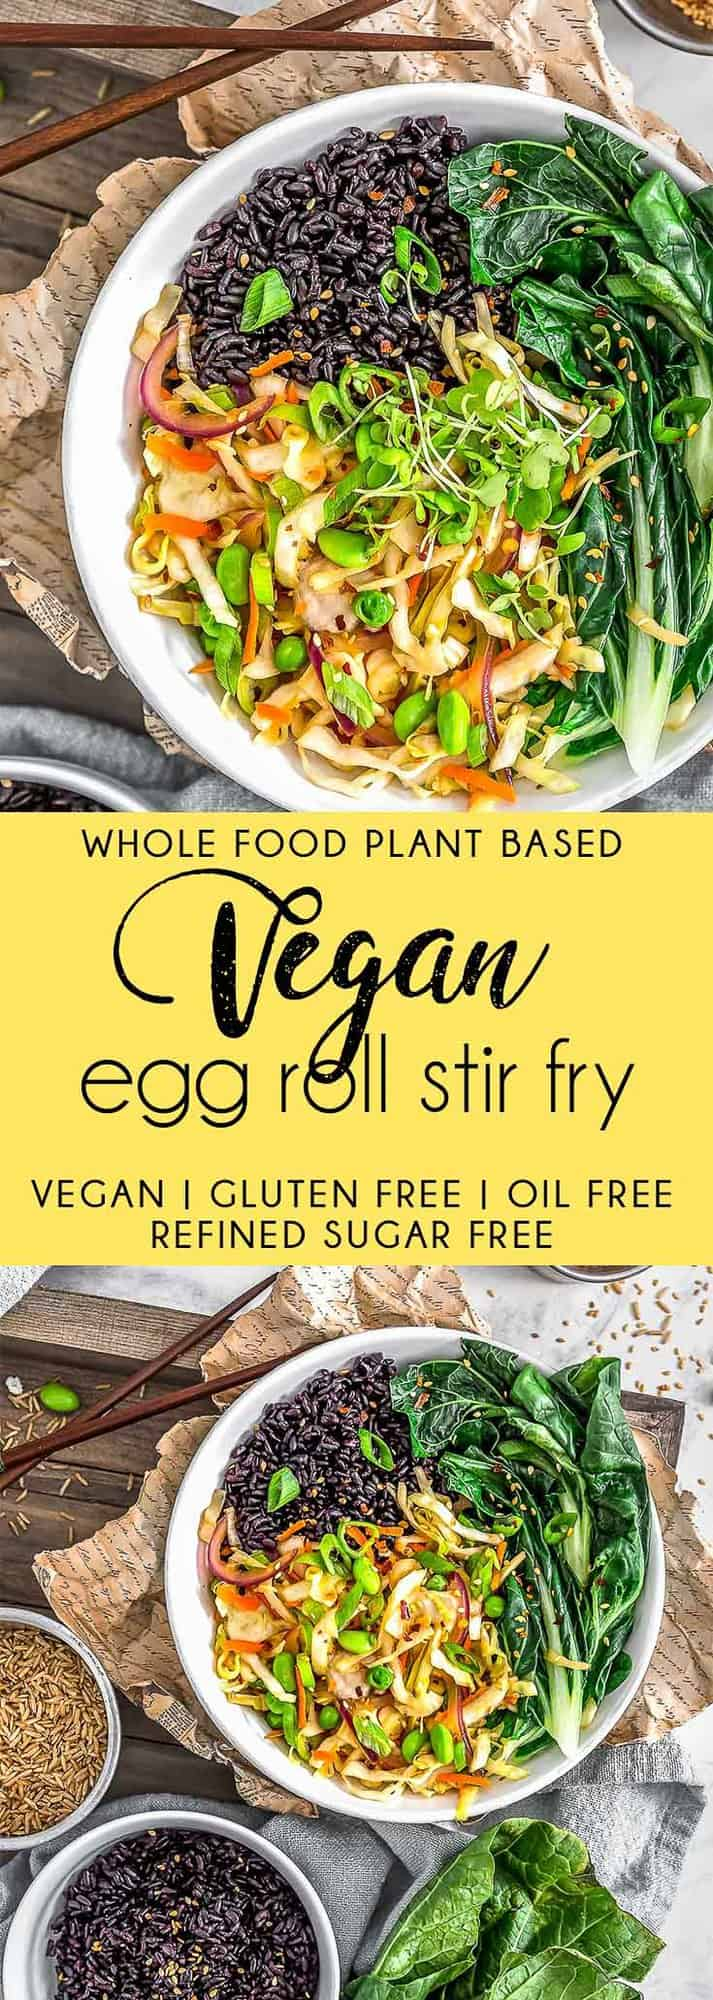 Vegan Egg Roll Stir Fry, vegan stir fry, oil free stir fry, vegan egg roll, cabbage, stir fry, plant based, vegan, vegetarian, whole food plant based, gluten free, recipe, wfpb, healthy, healthy vegan, oil free, no refined sugar, no oil, refined sugar free, dairy free, dinner party, entertaining, dinner, lunch, rice, easy recipe, appetizer, summer, fall, winter, spring